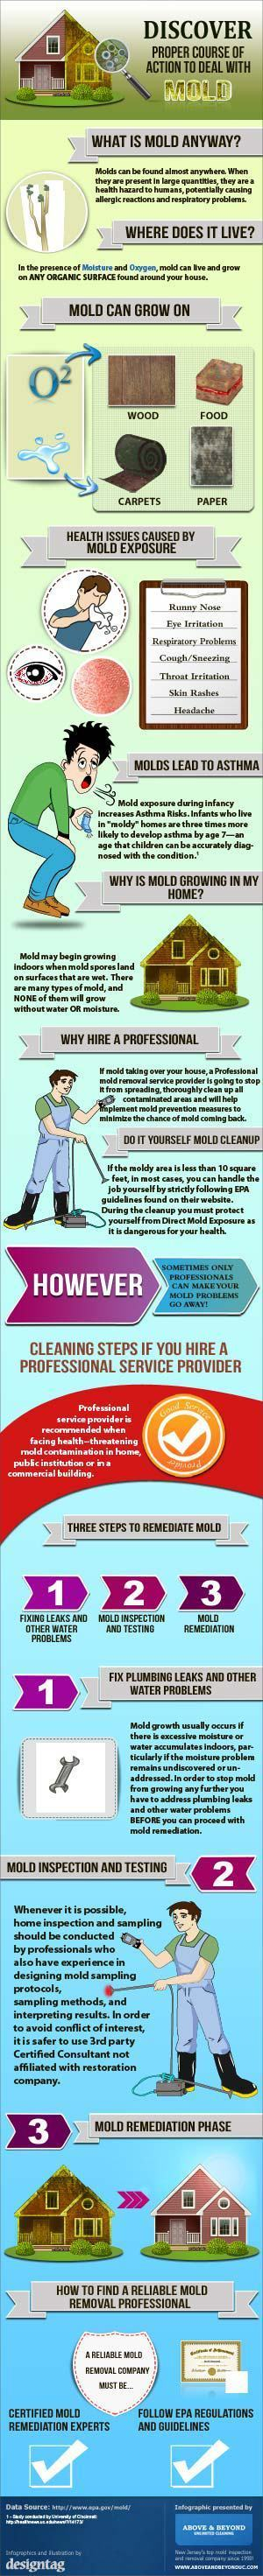 Mold Prevention and Information Summary!